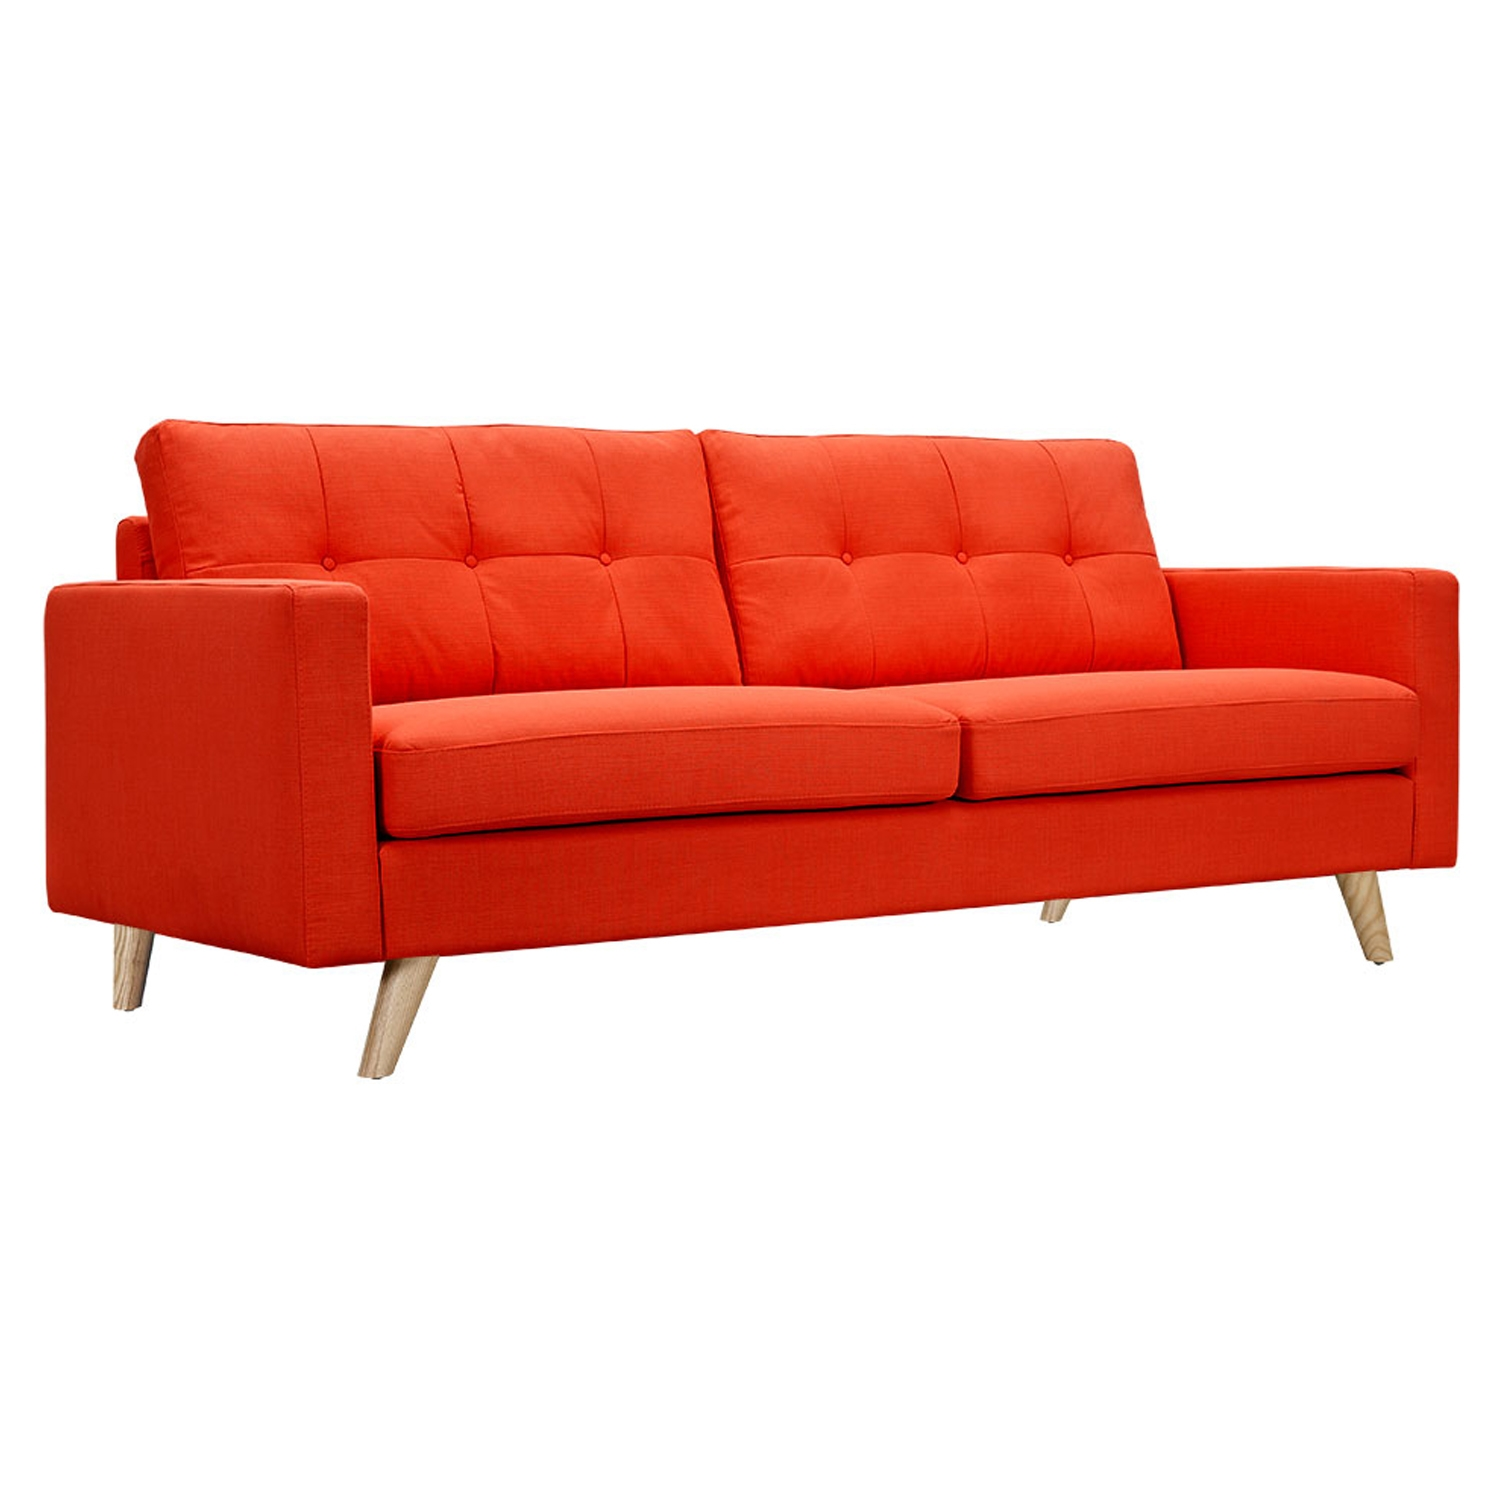 Uma Sofa - Retro Orange, Button Tufted